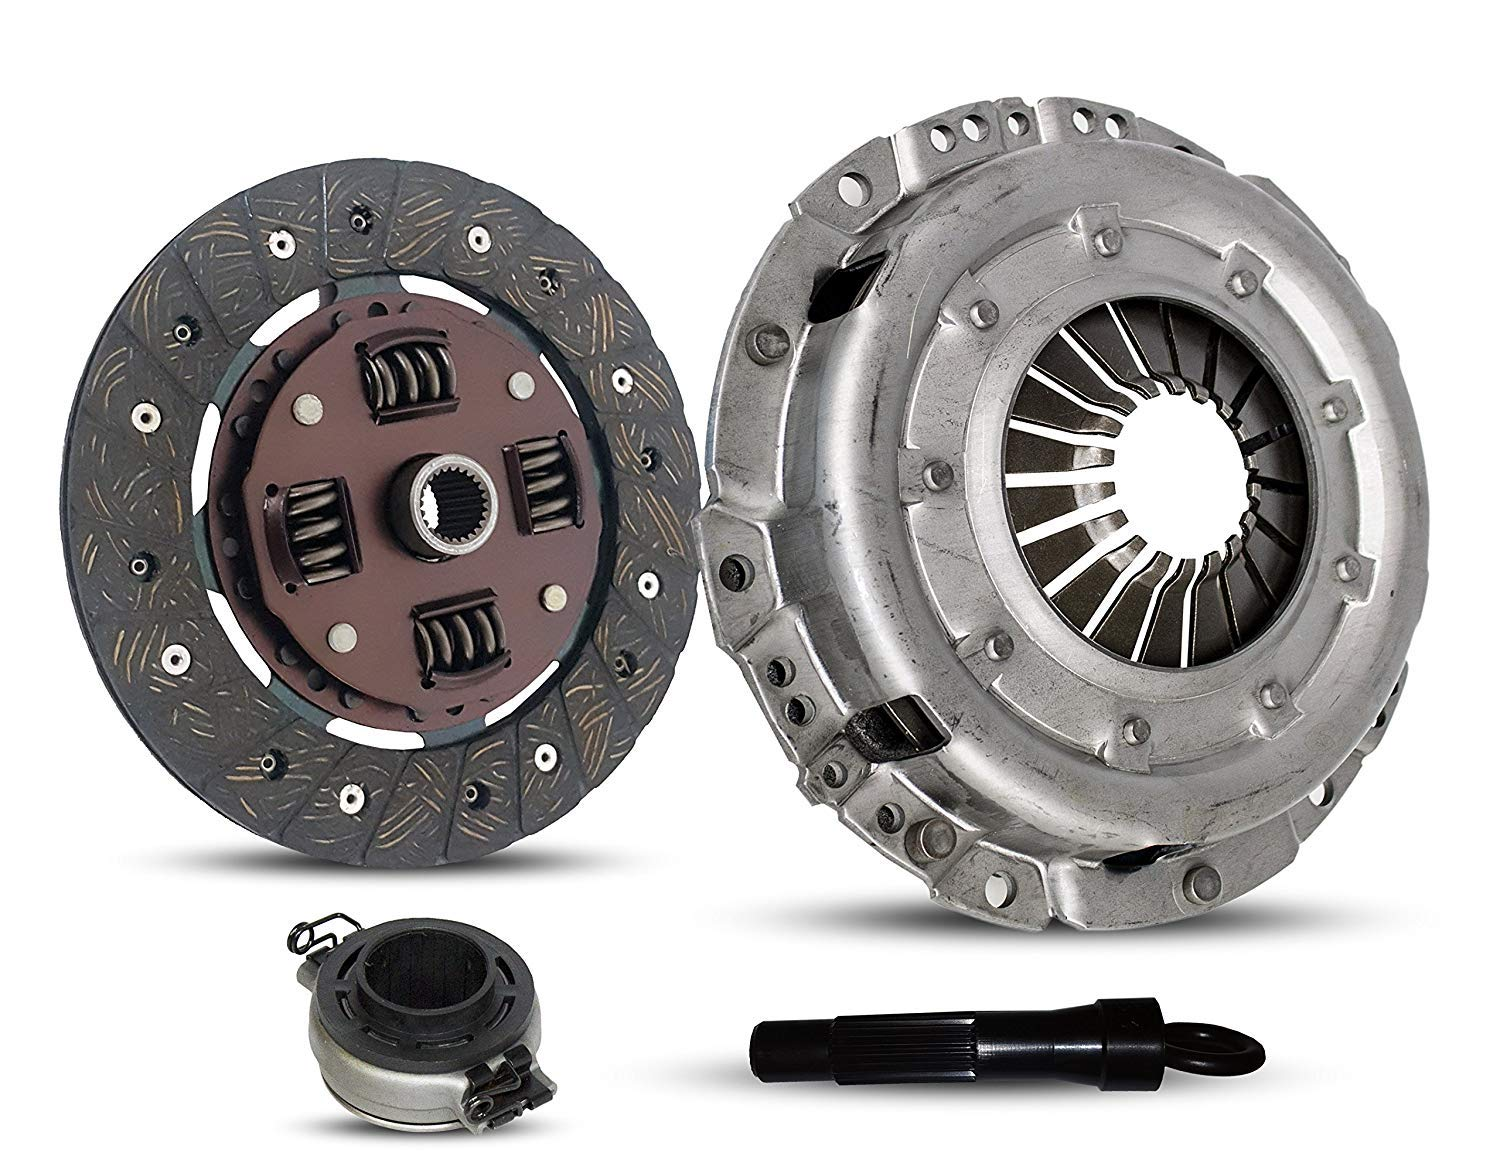 Clutch Replacement Kit works with Vw Beetle Fastback Thing Karmann Ghia Base Sedan Convertible 211 215 261 265 1970-1979 1.6L H4 GAS Naturally Aspirated (Flywheel Spec: -0.83; From 9/70)